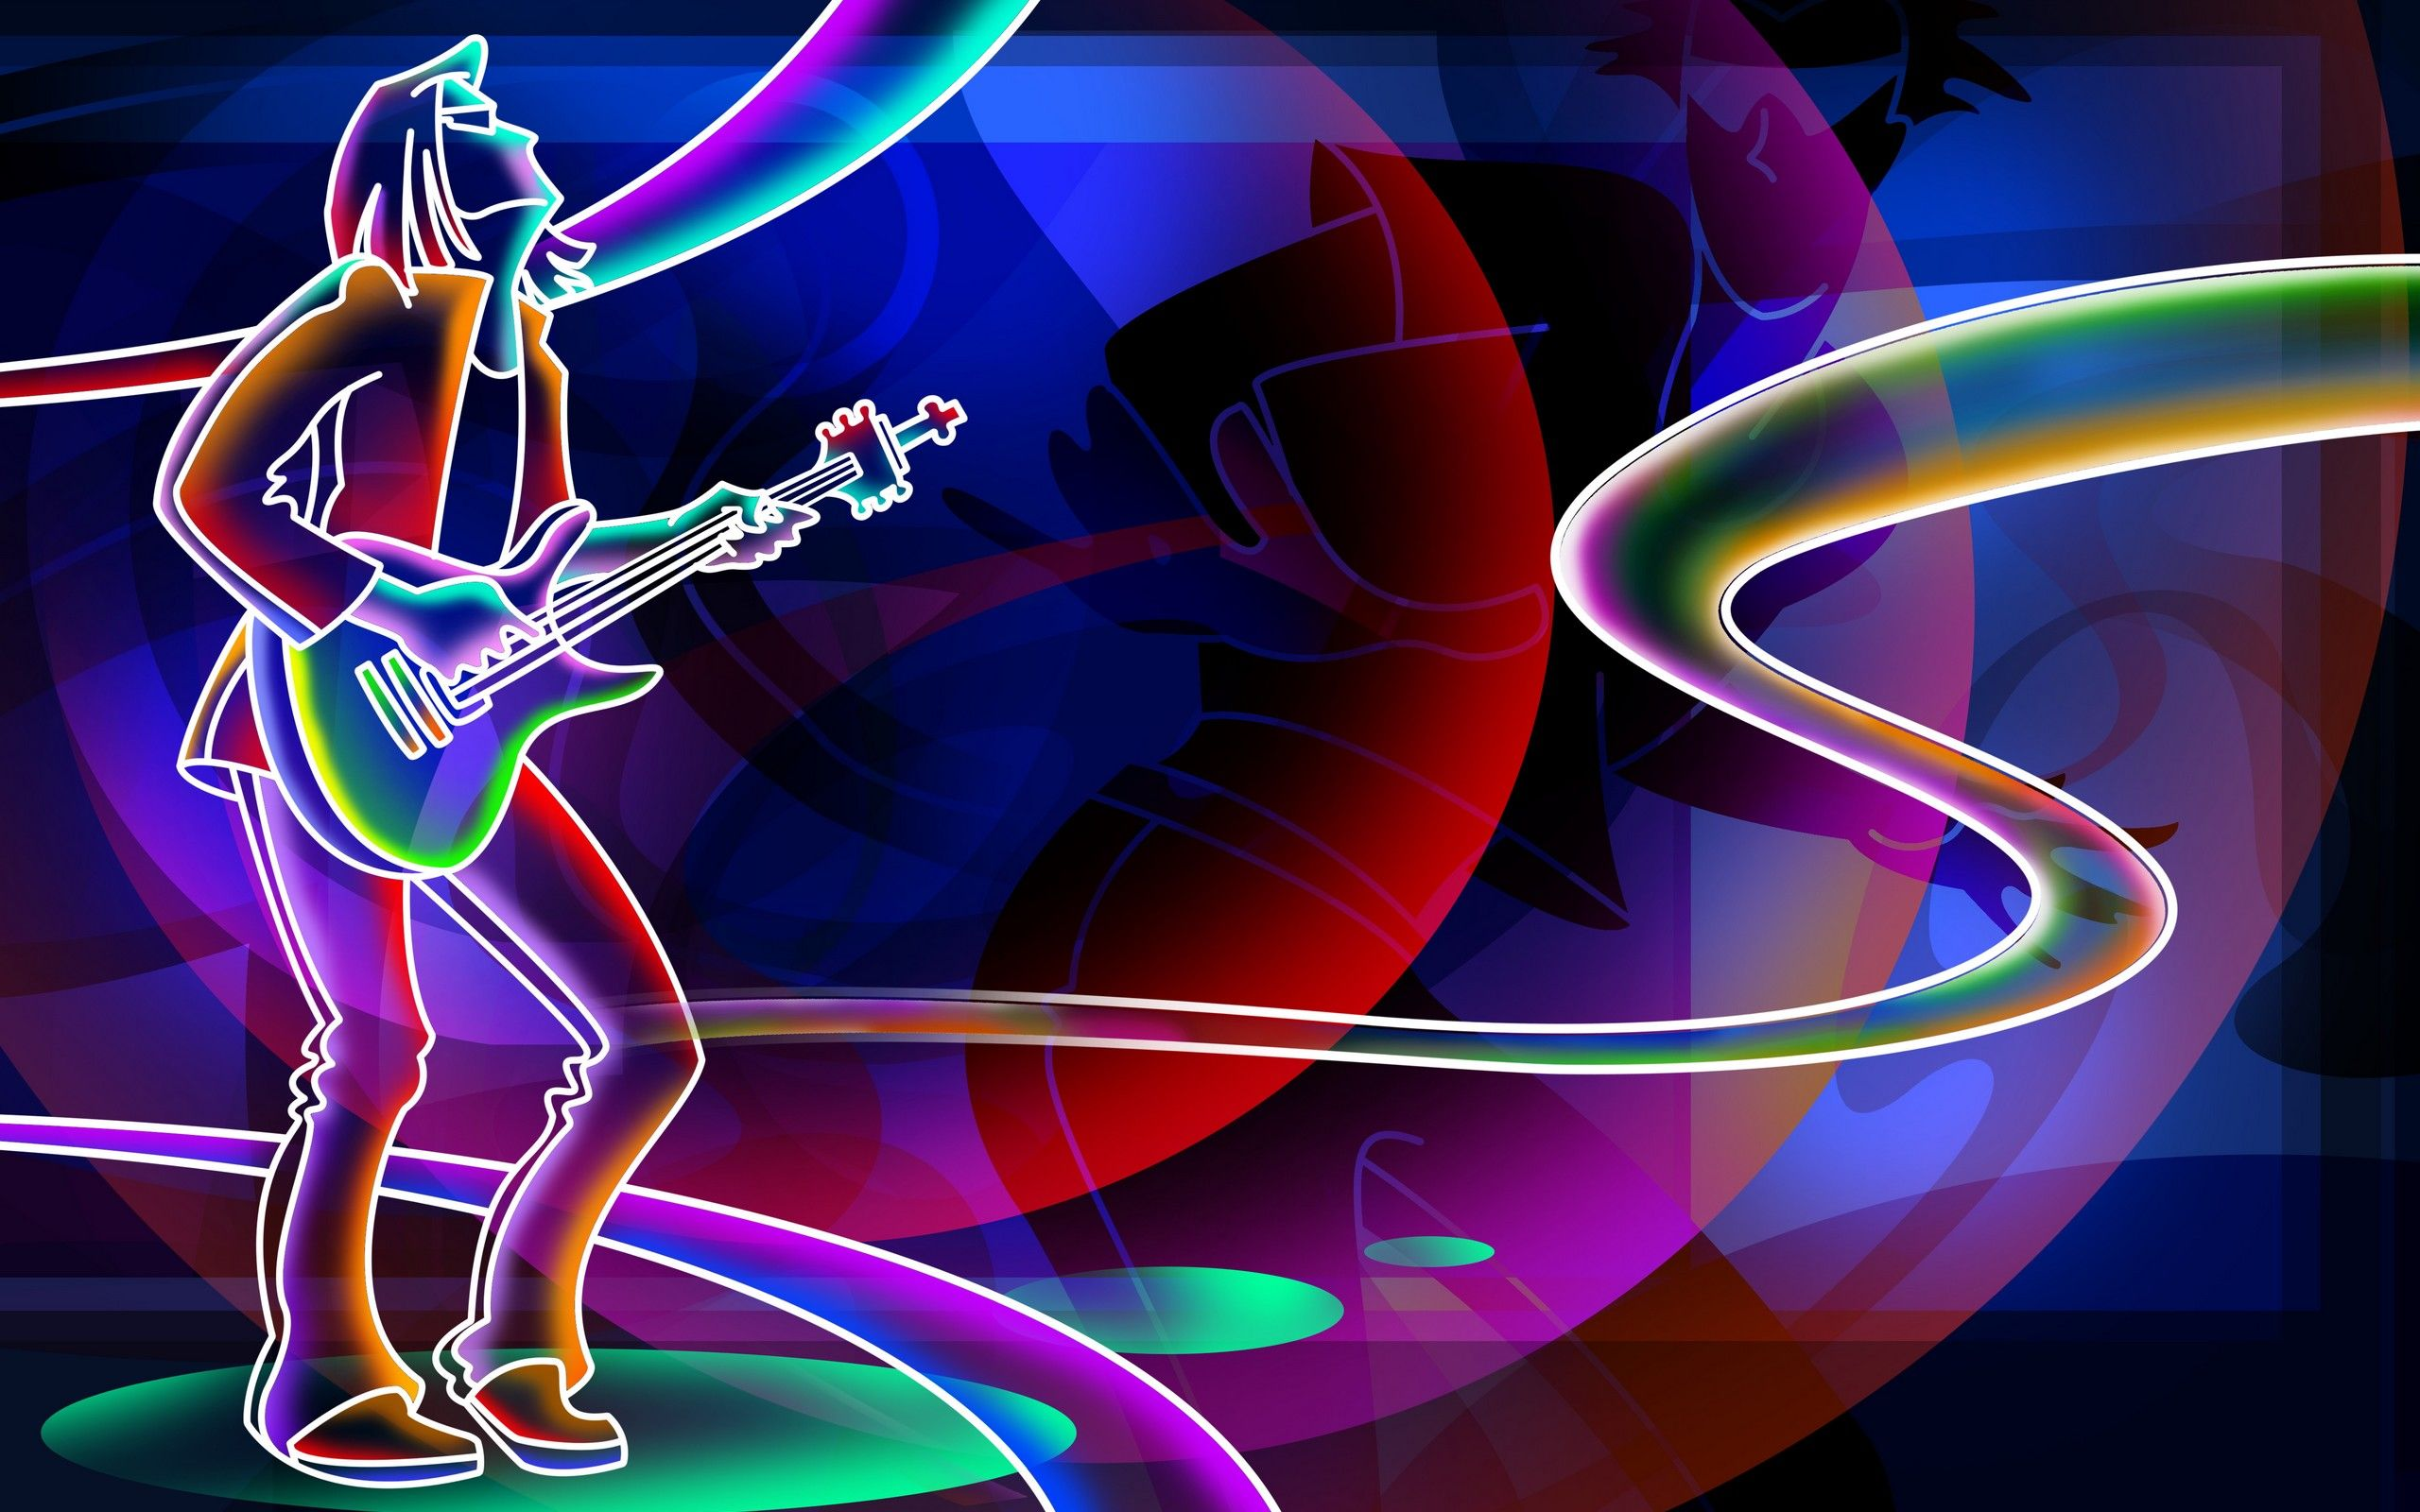 Colorful guitar music Neon Signs Neon wallpaper Music 2560x1600